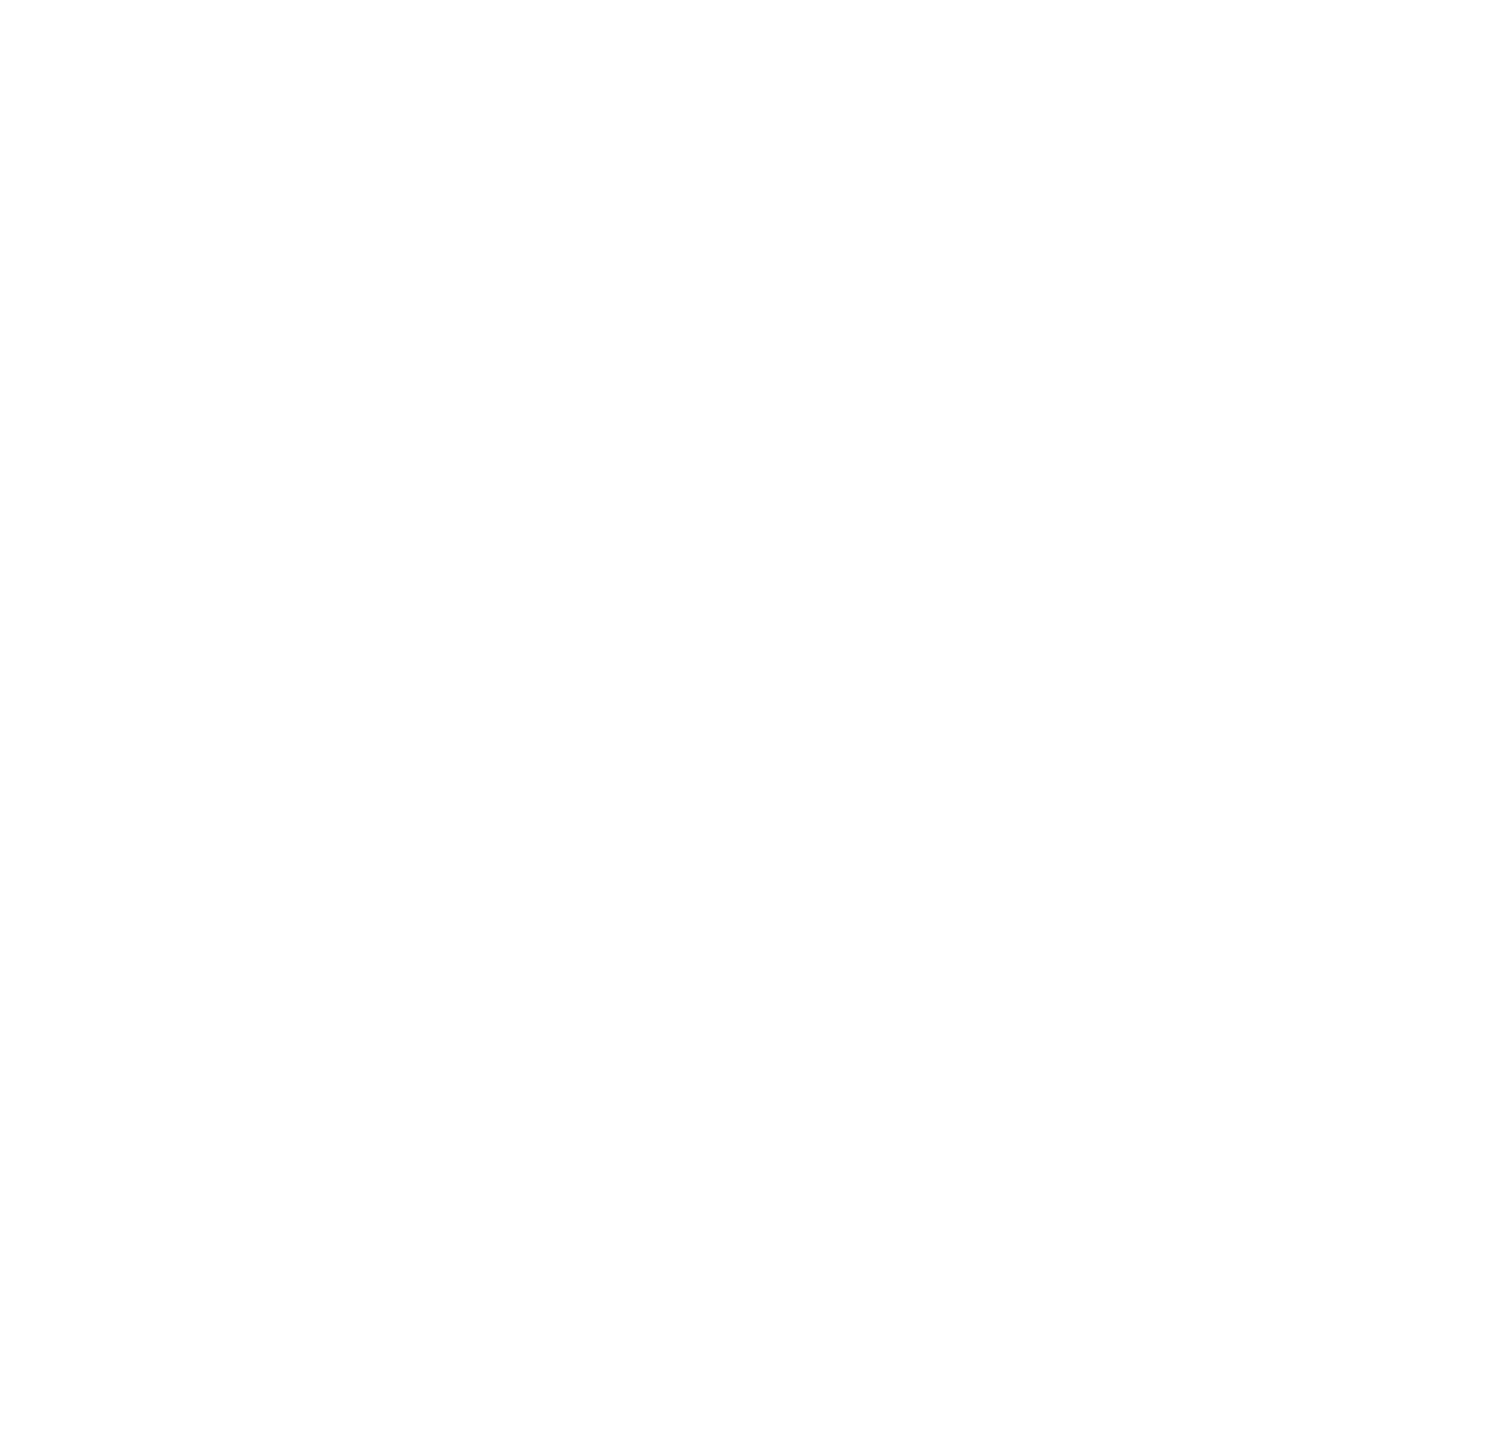 Woodstock Gin Co